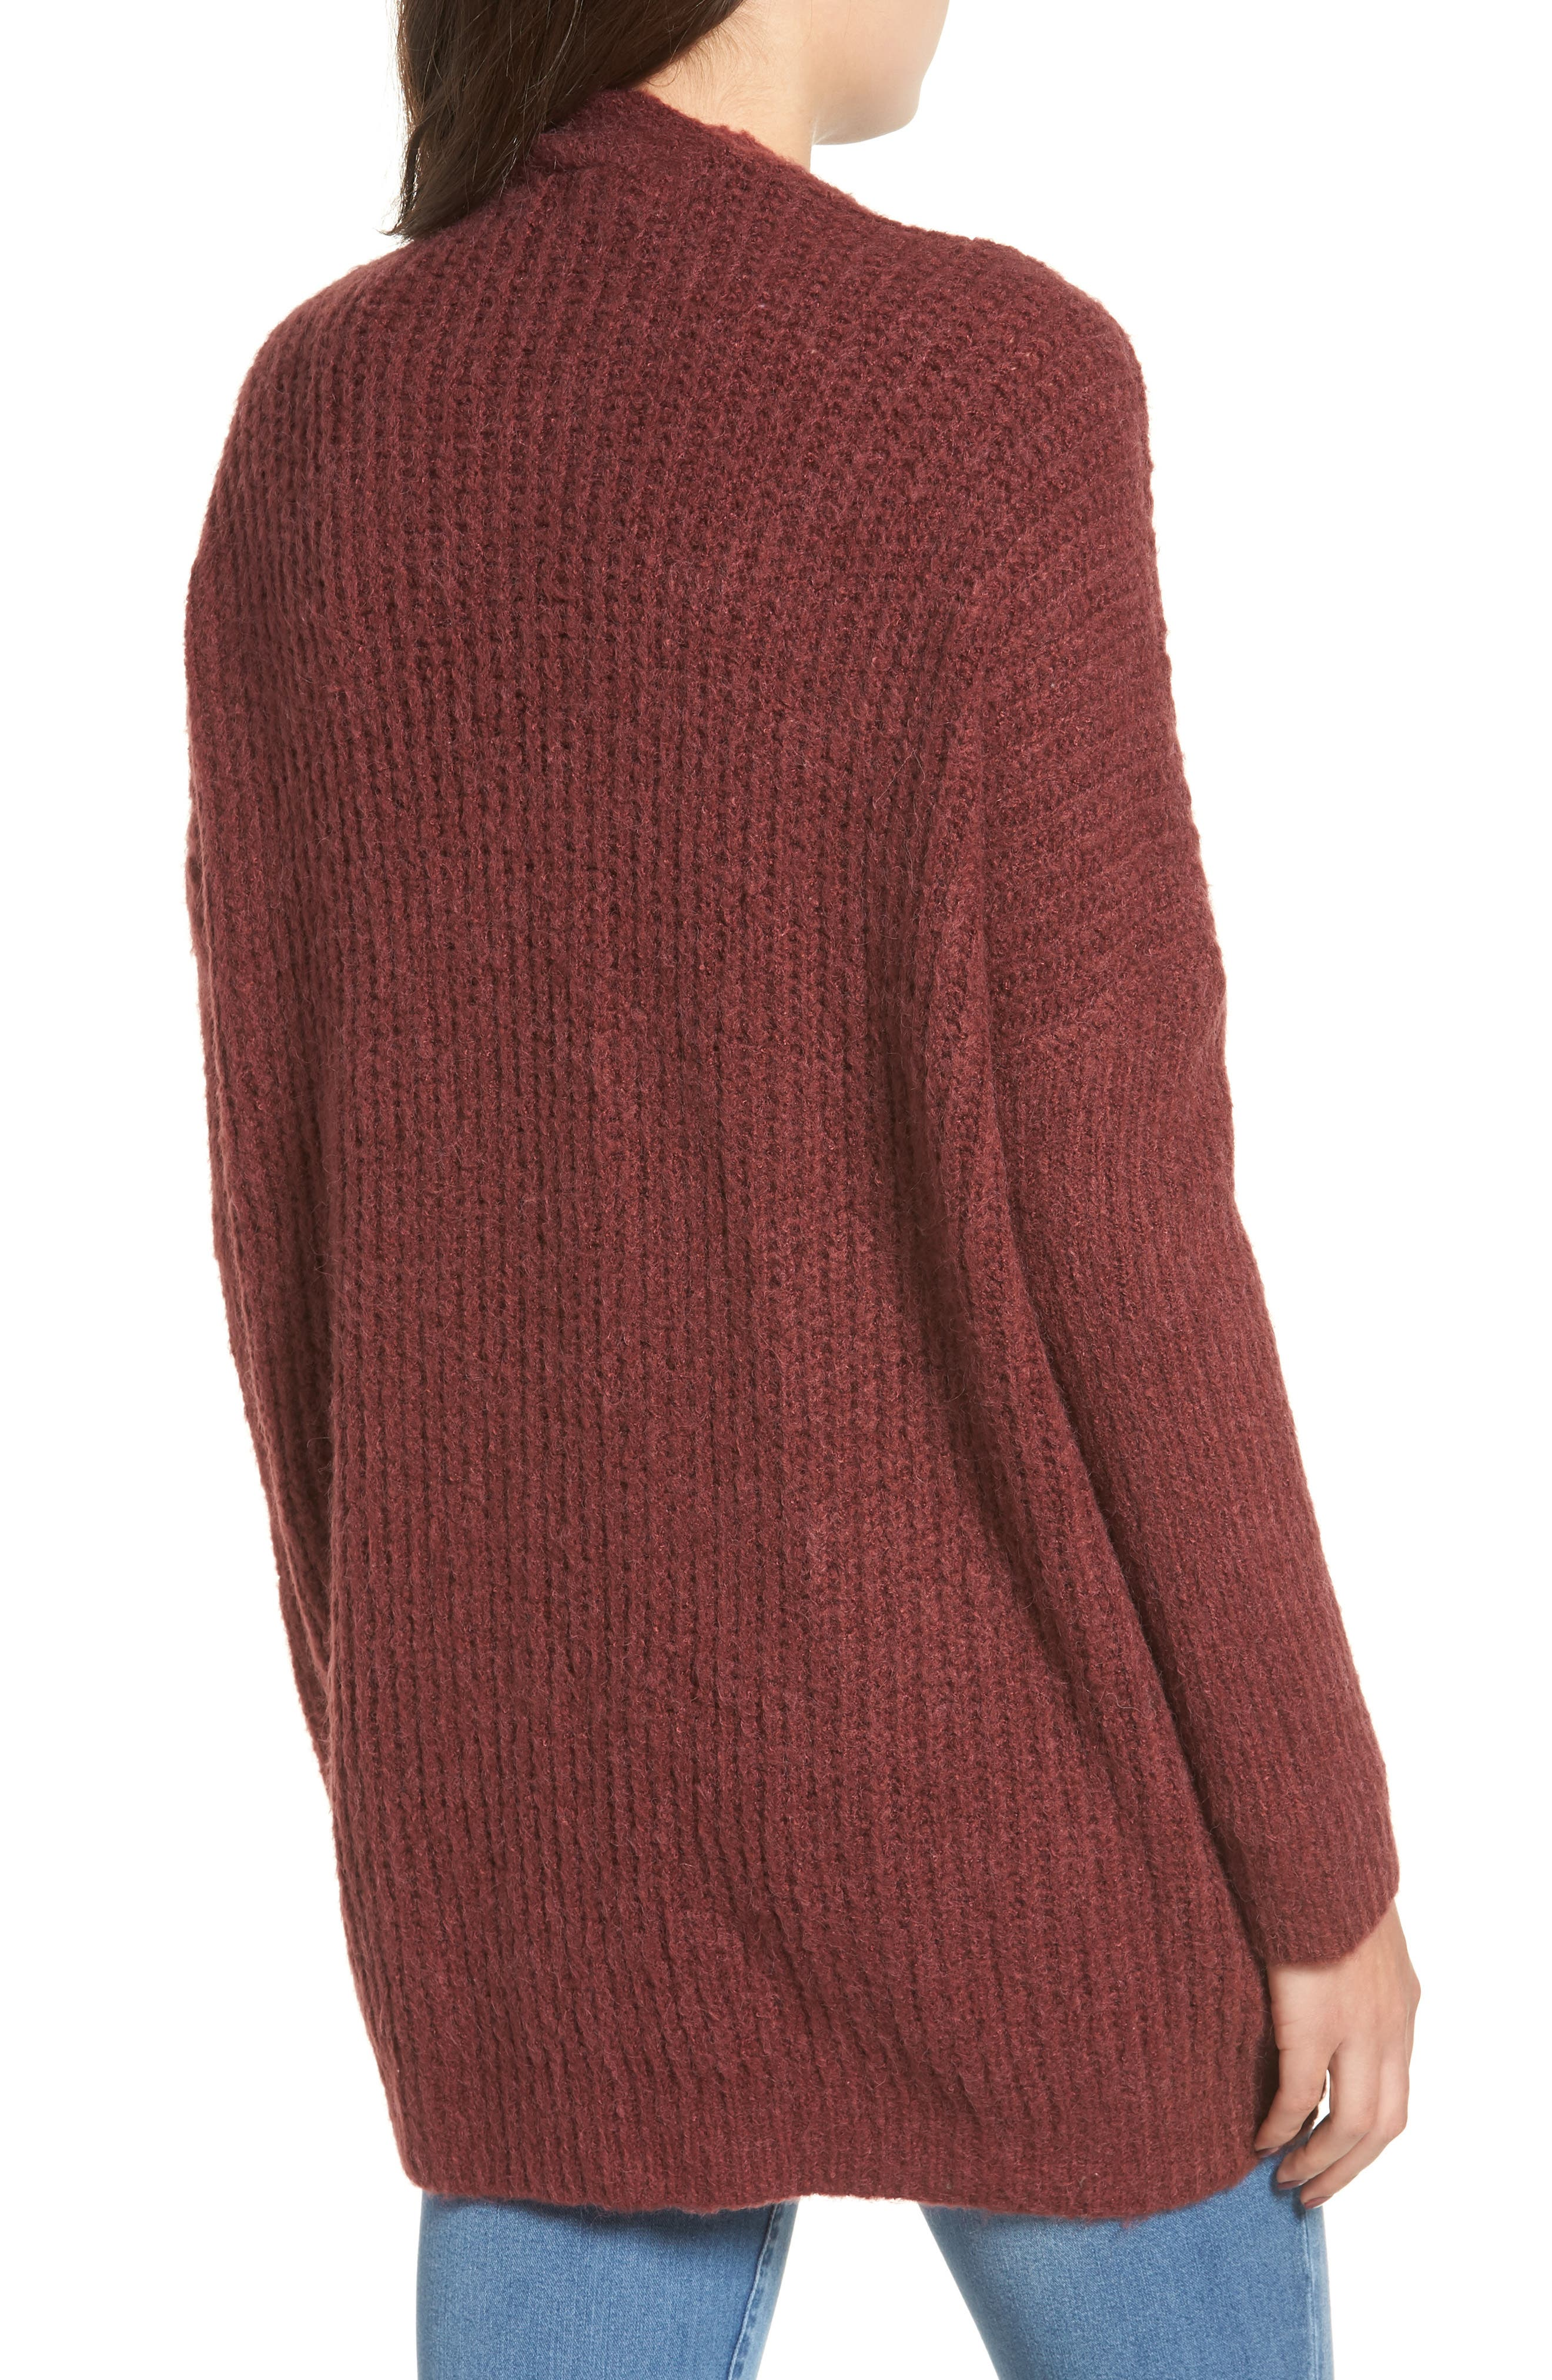 Rib Knit Open Cardigan,                             Alternate thumbnail 2, color,                             650